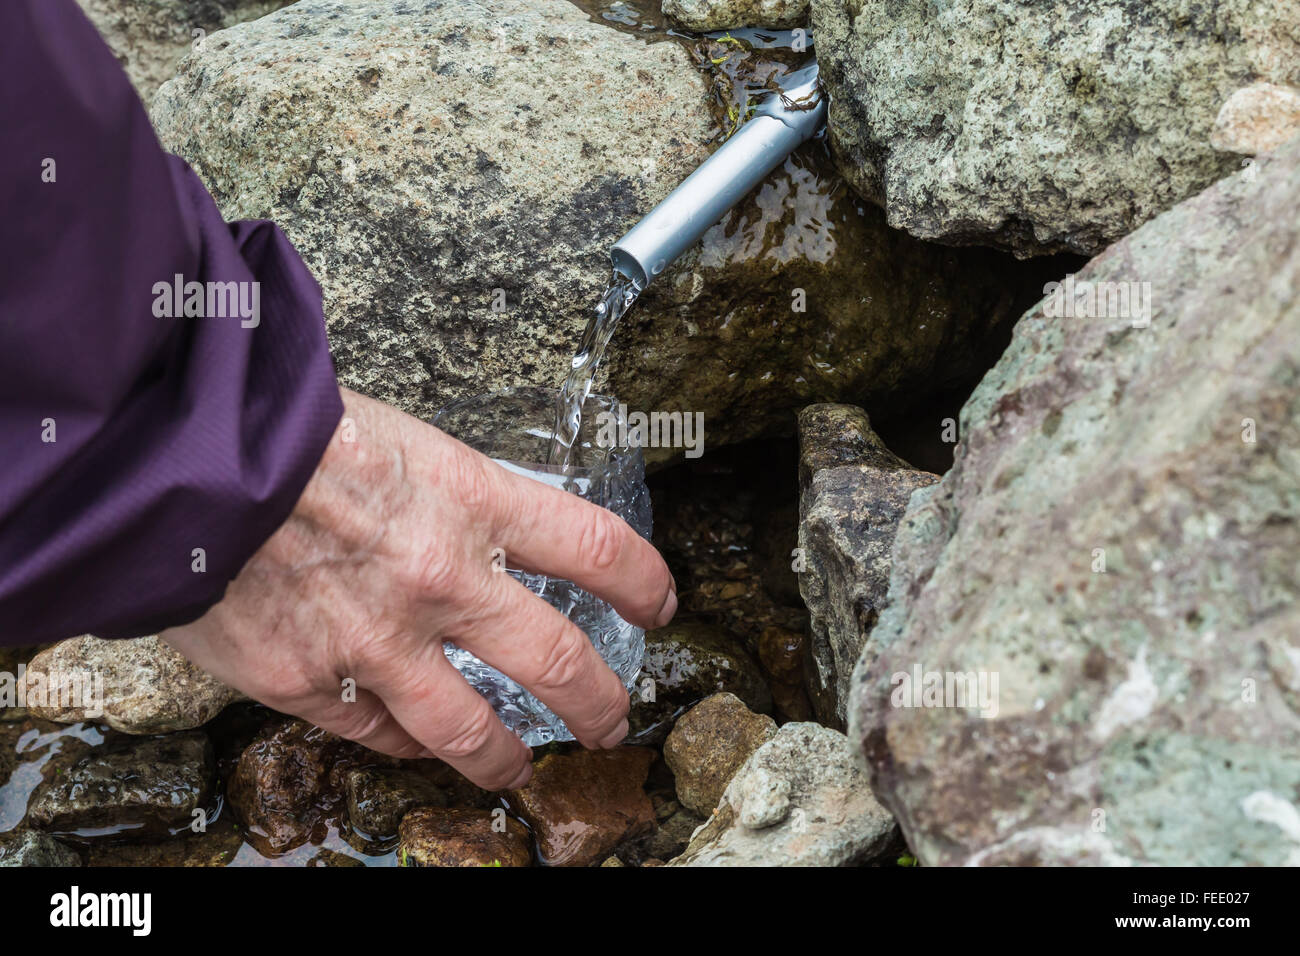 Ferrule from tent repair kit directs water from spring for hiker Mount Baker-Snoqualmie National Forest Washington State USA & Ferrule from tent repair kit directs water from spring for hiker ...